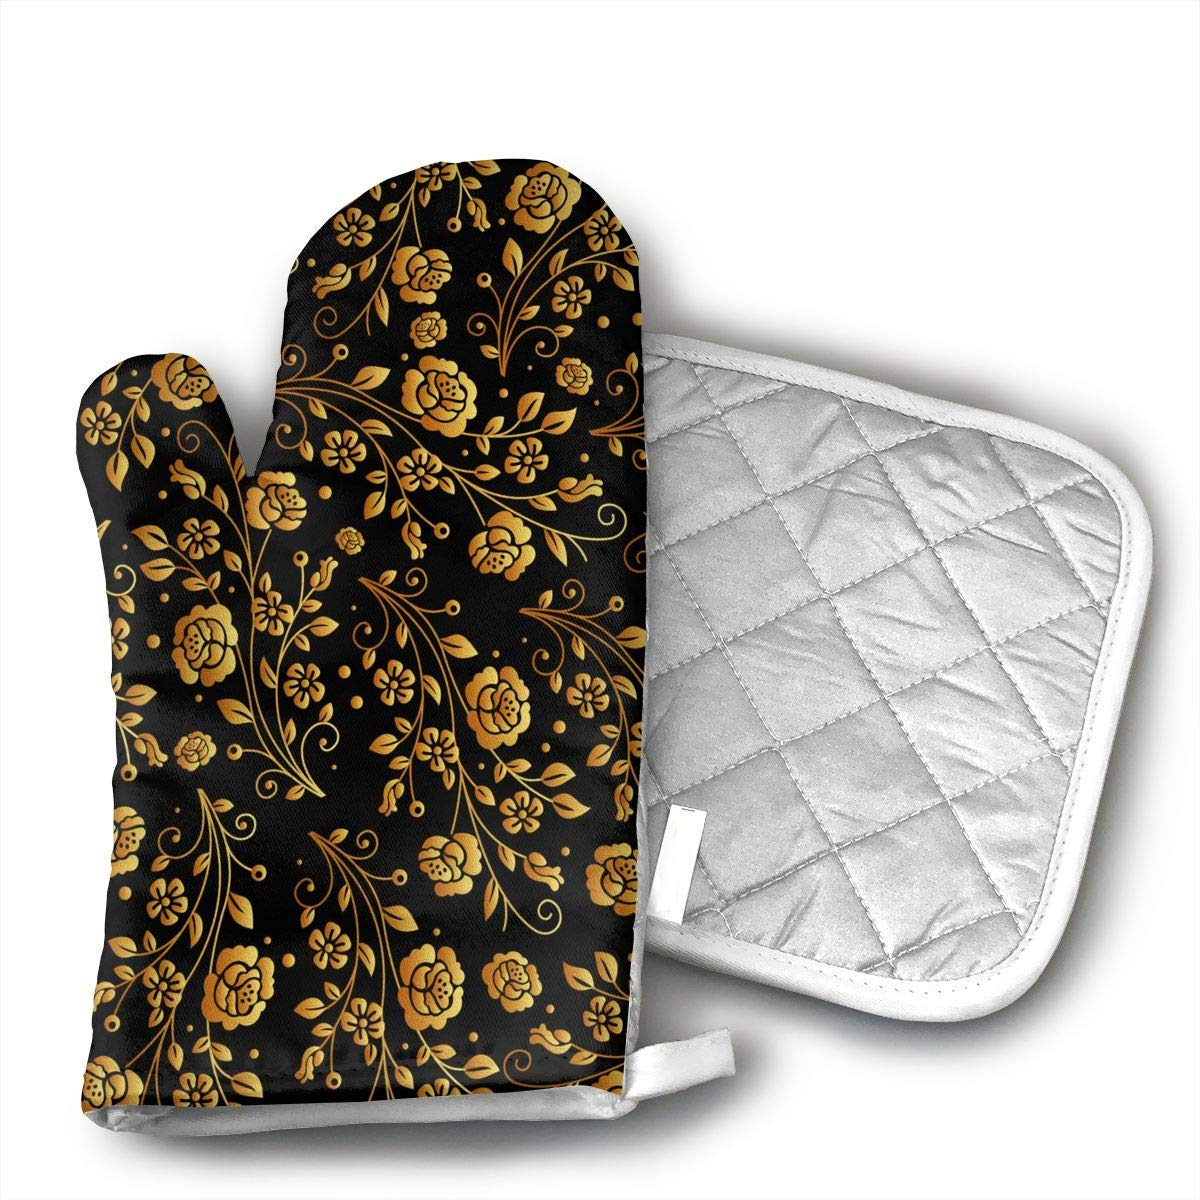 KUGUANG Black Gold Rose@Oven Mitts, Non-Slip Silicone Oven Mitts, Extra Long Kitchen Mitts, Heat Resistant to 500!aF Kitchen Oven Gloves